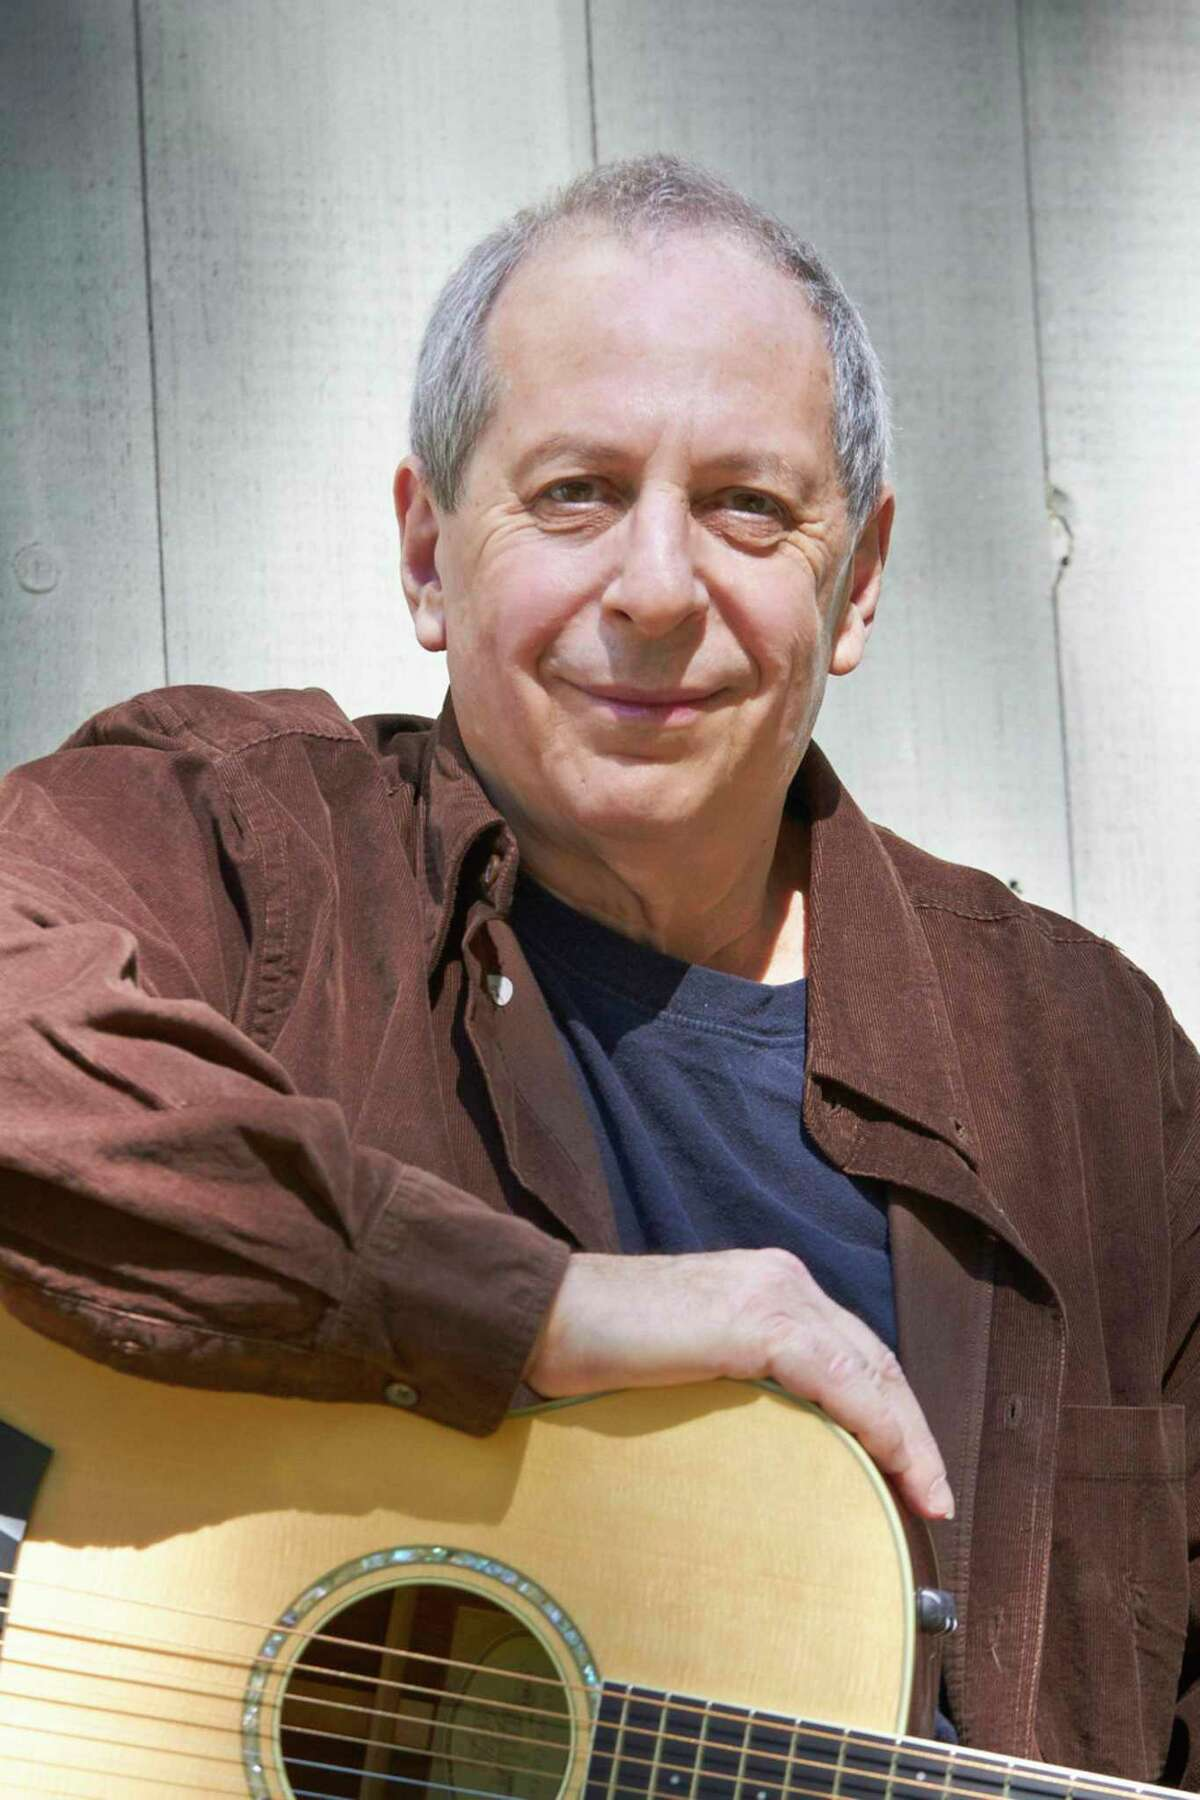 Steve Katz, founding member of legendary bands Blood, Sweat & Tears and The Blues Project, is performing a cabaret concert in Kent Oct. 9.